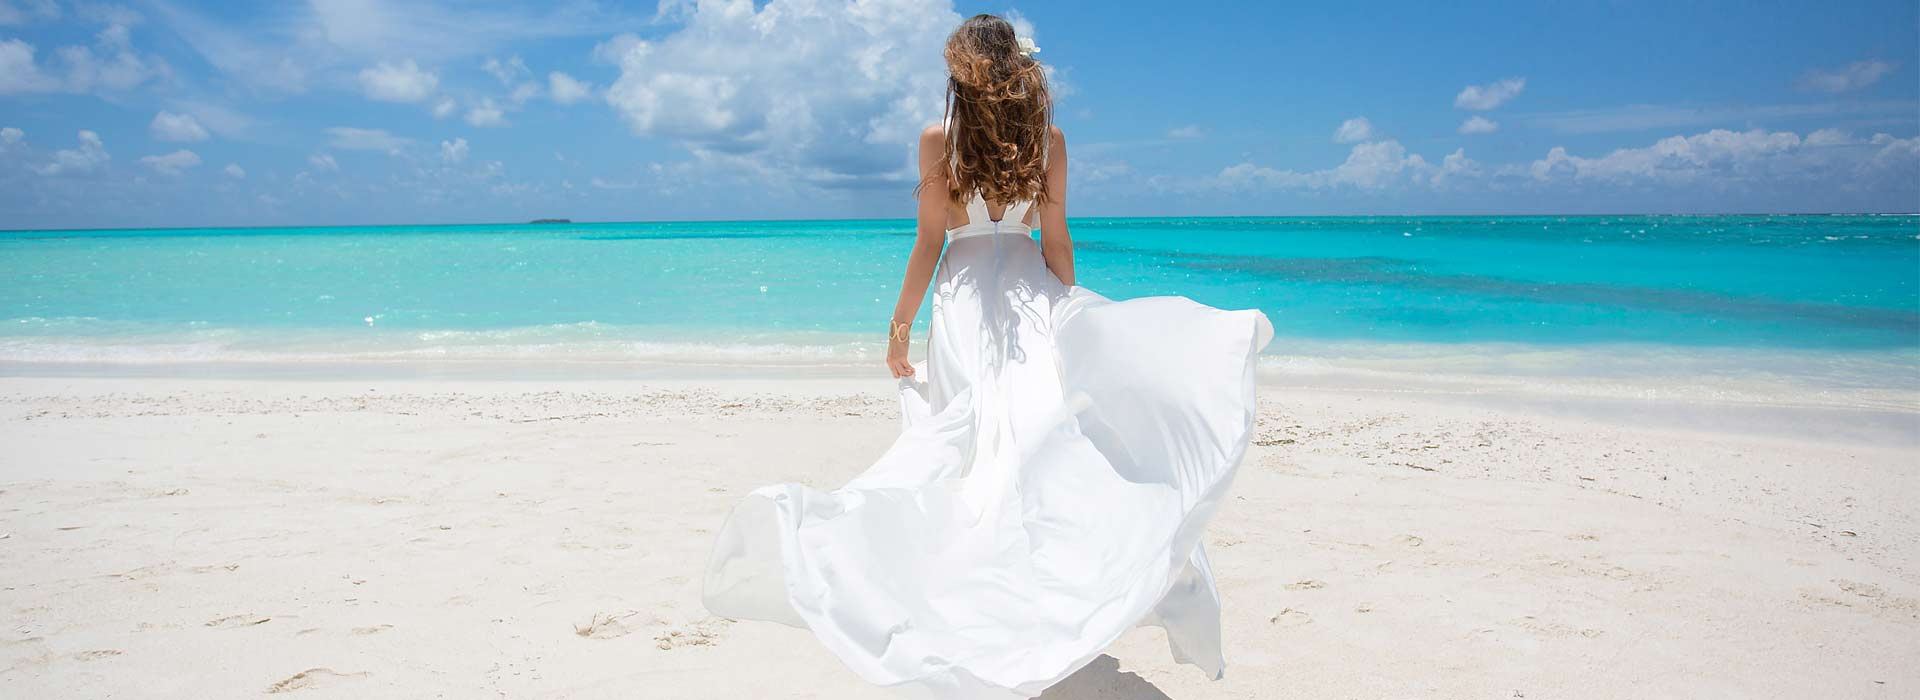 A girl wearing a white frock on the beach